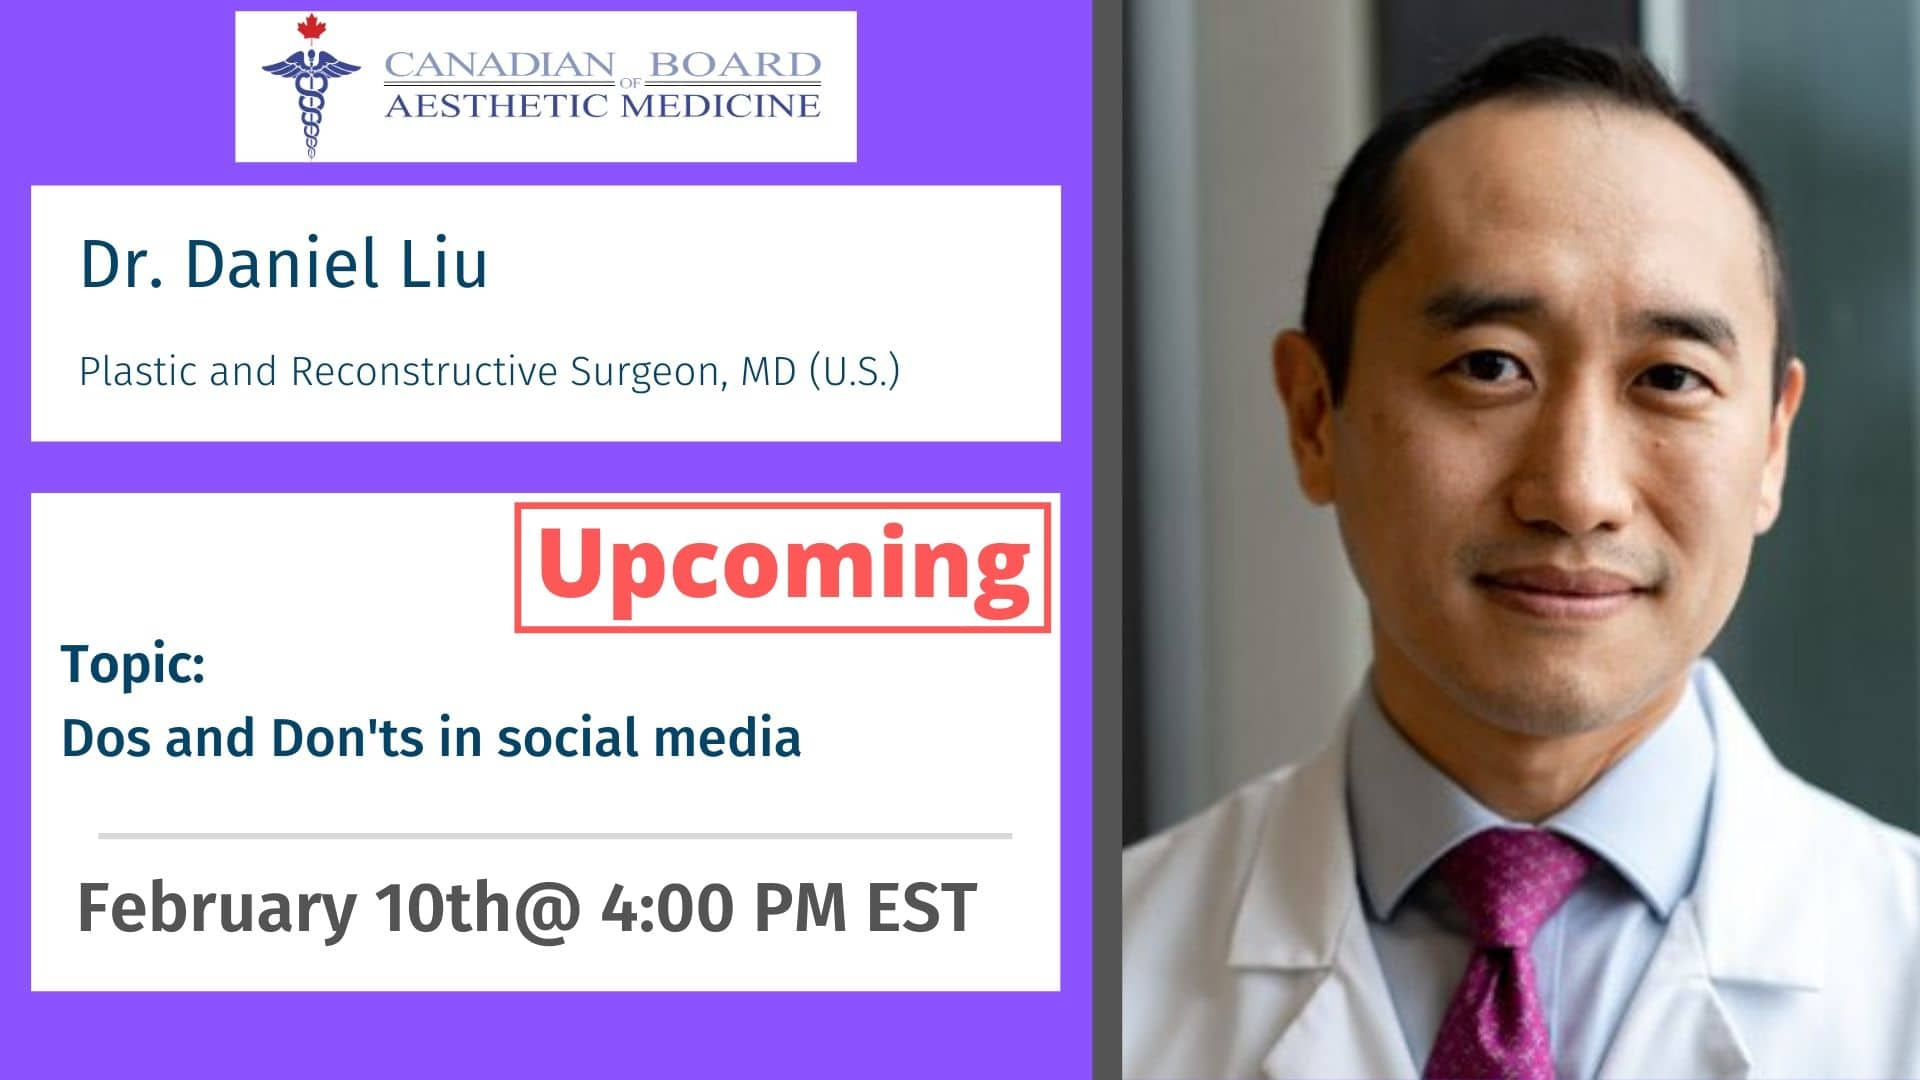 Dr. Liu, Injectables, CBAM, Botox, Filler, Cadaver, Lab, Education, Master, Basic, Advance